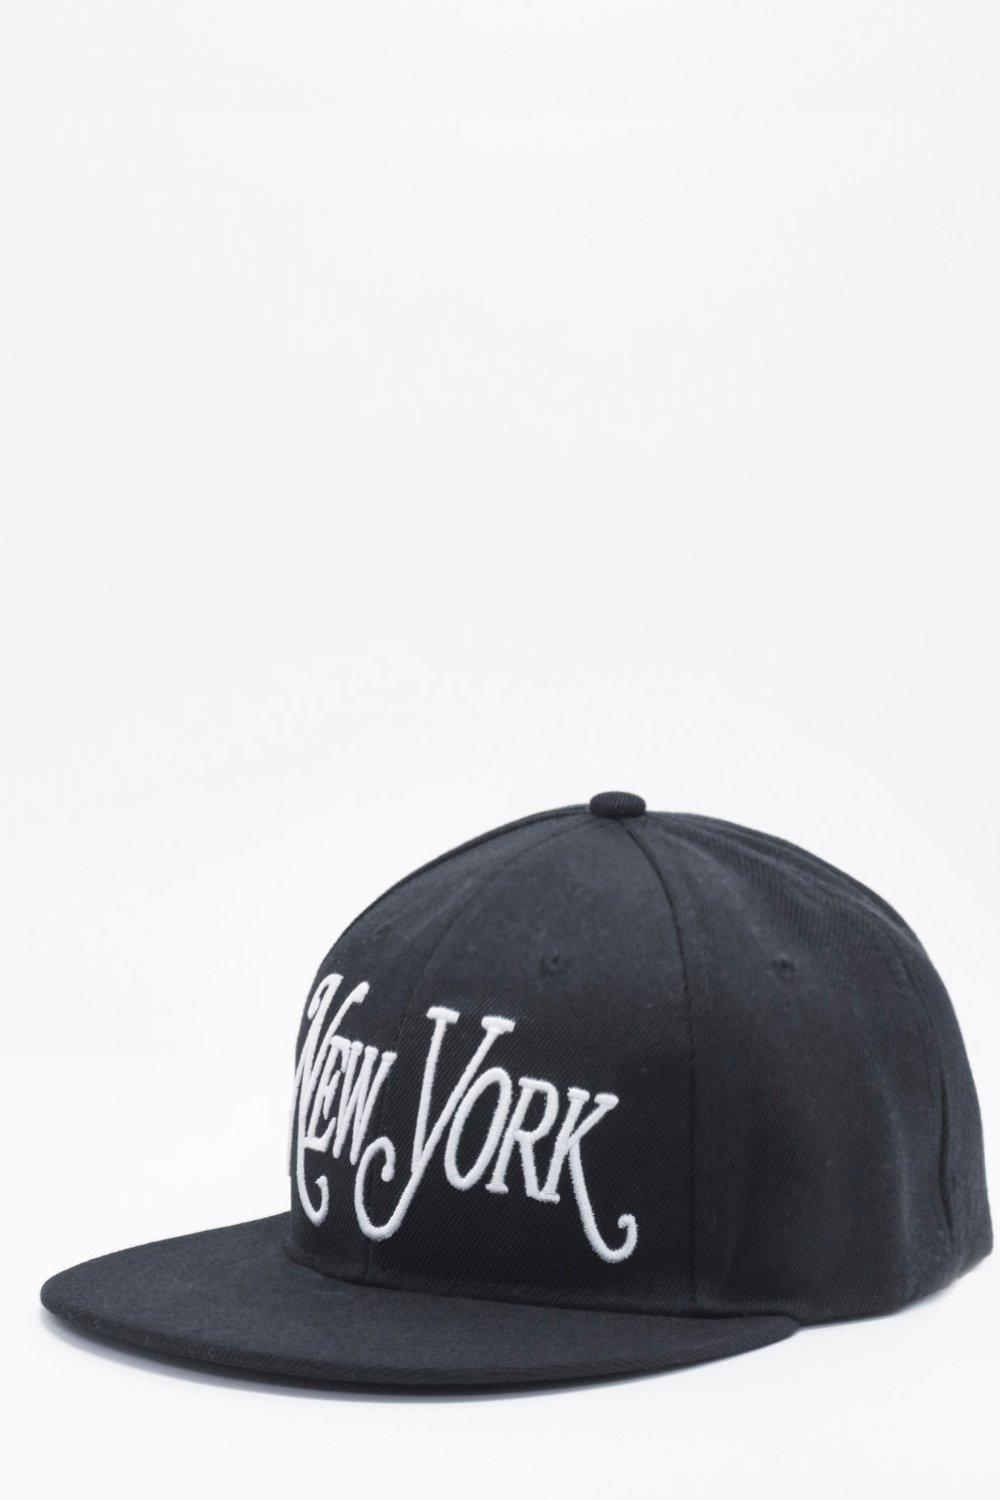 New York Embroidered Snap Back Cap - black - Black